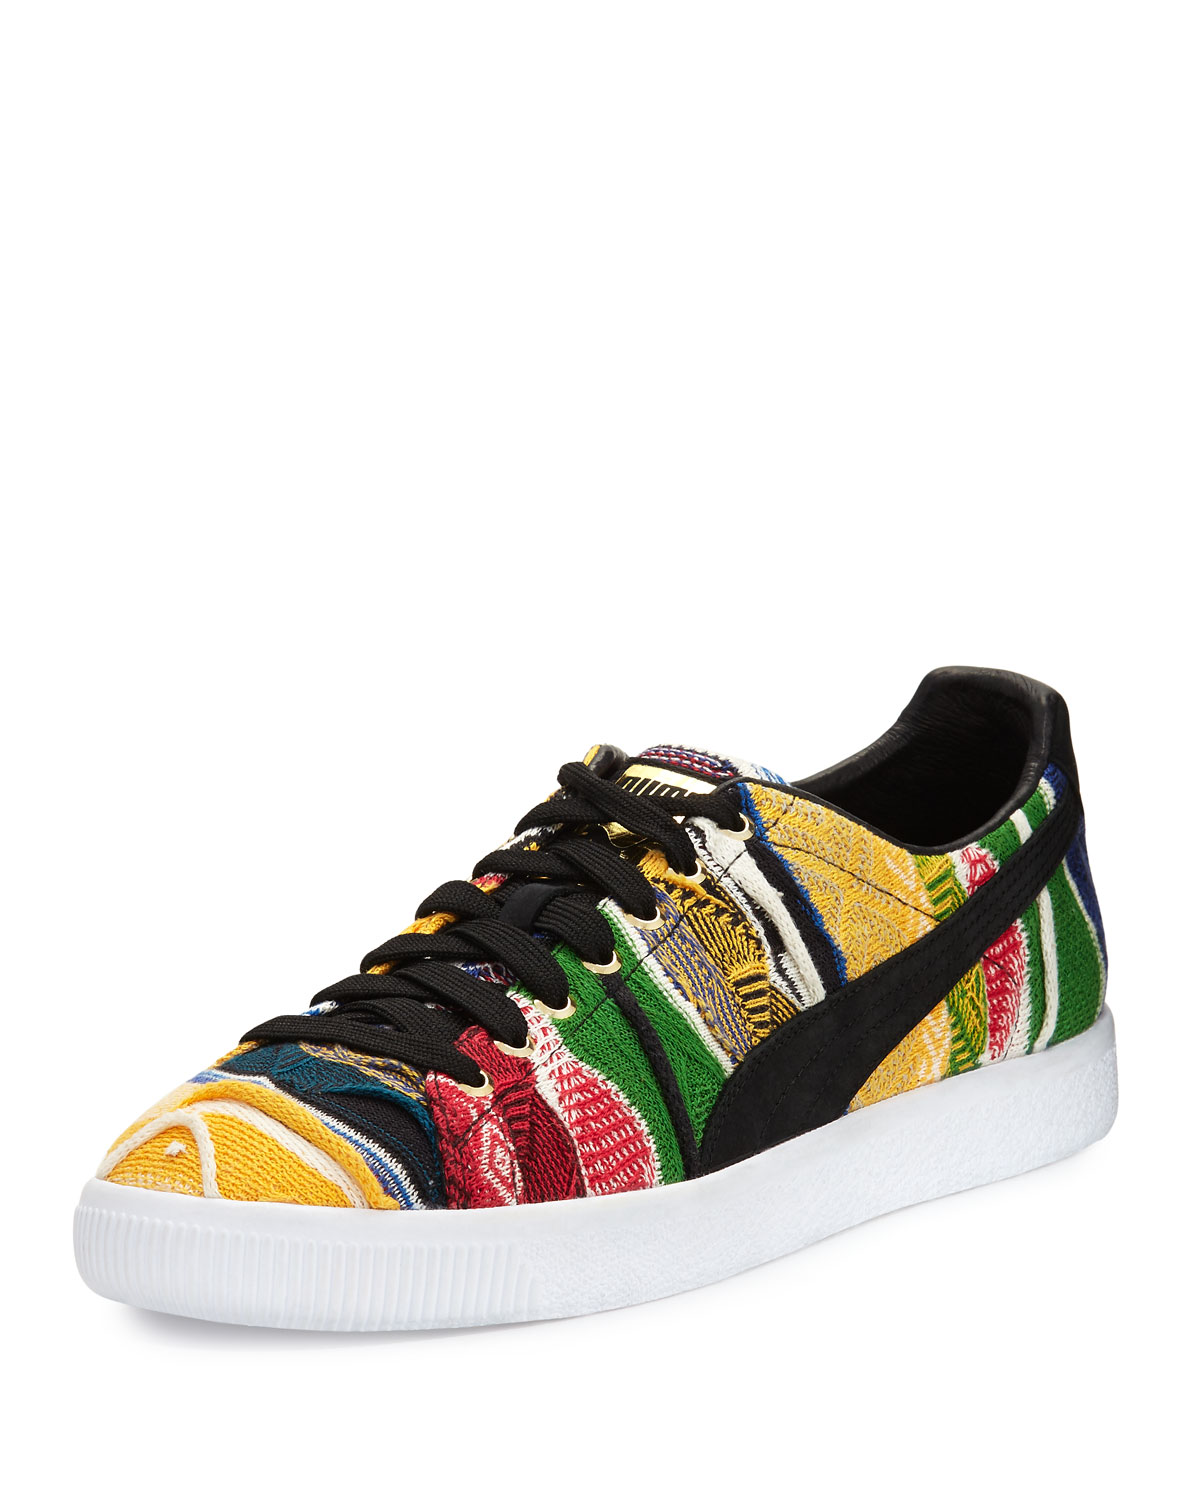 free shipping c809d d4ce6 x COOGI Men's Clyde Knit Low-Top Sneaker, Black/Yellow